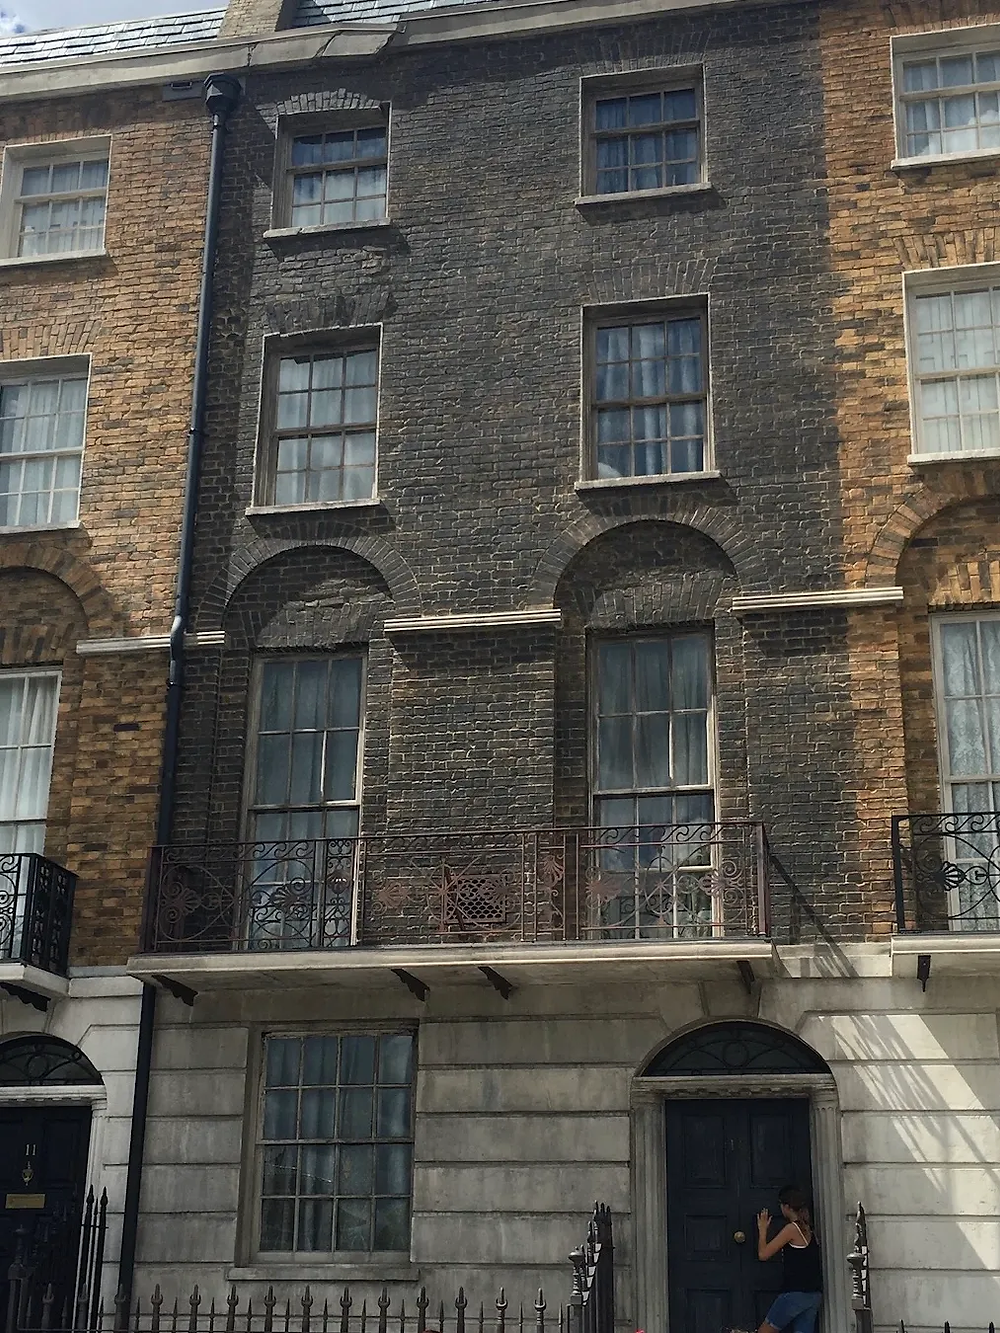 12 Grimmauld Place: a darkened town home to show that it has magically appeared near entrance to Diagon Alley